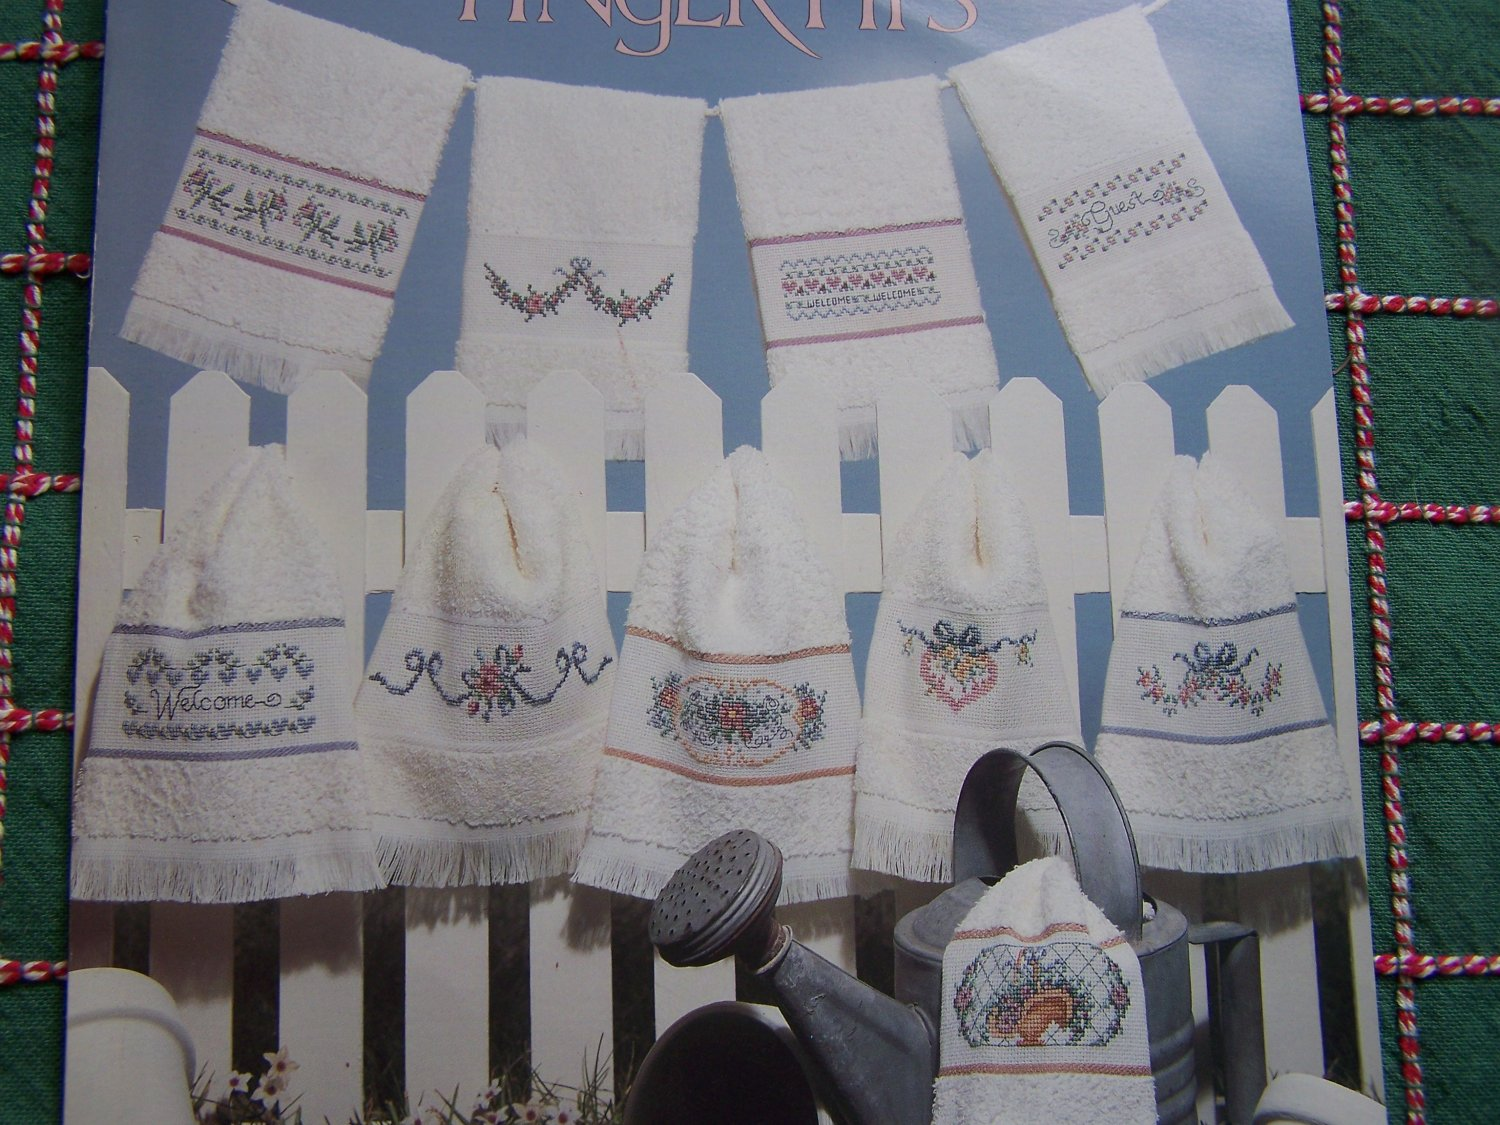 10 VTG Cross Stitch Embroidery Patterns Fingertip Towel Designs